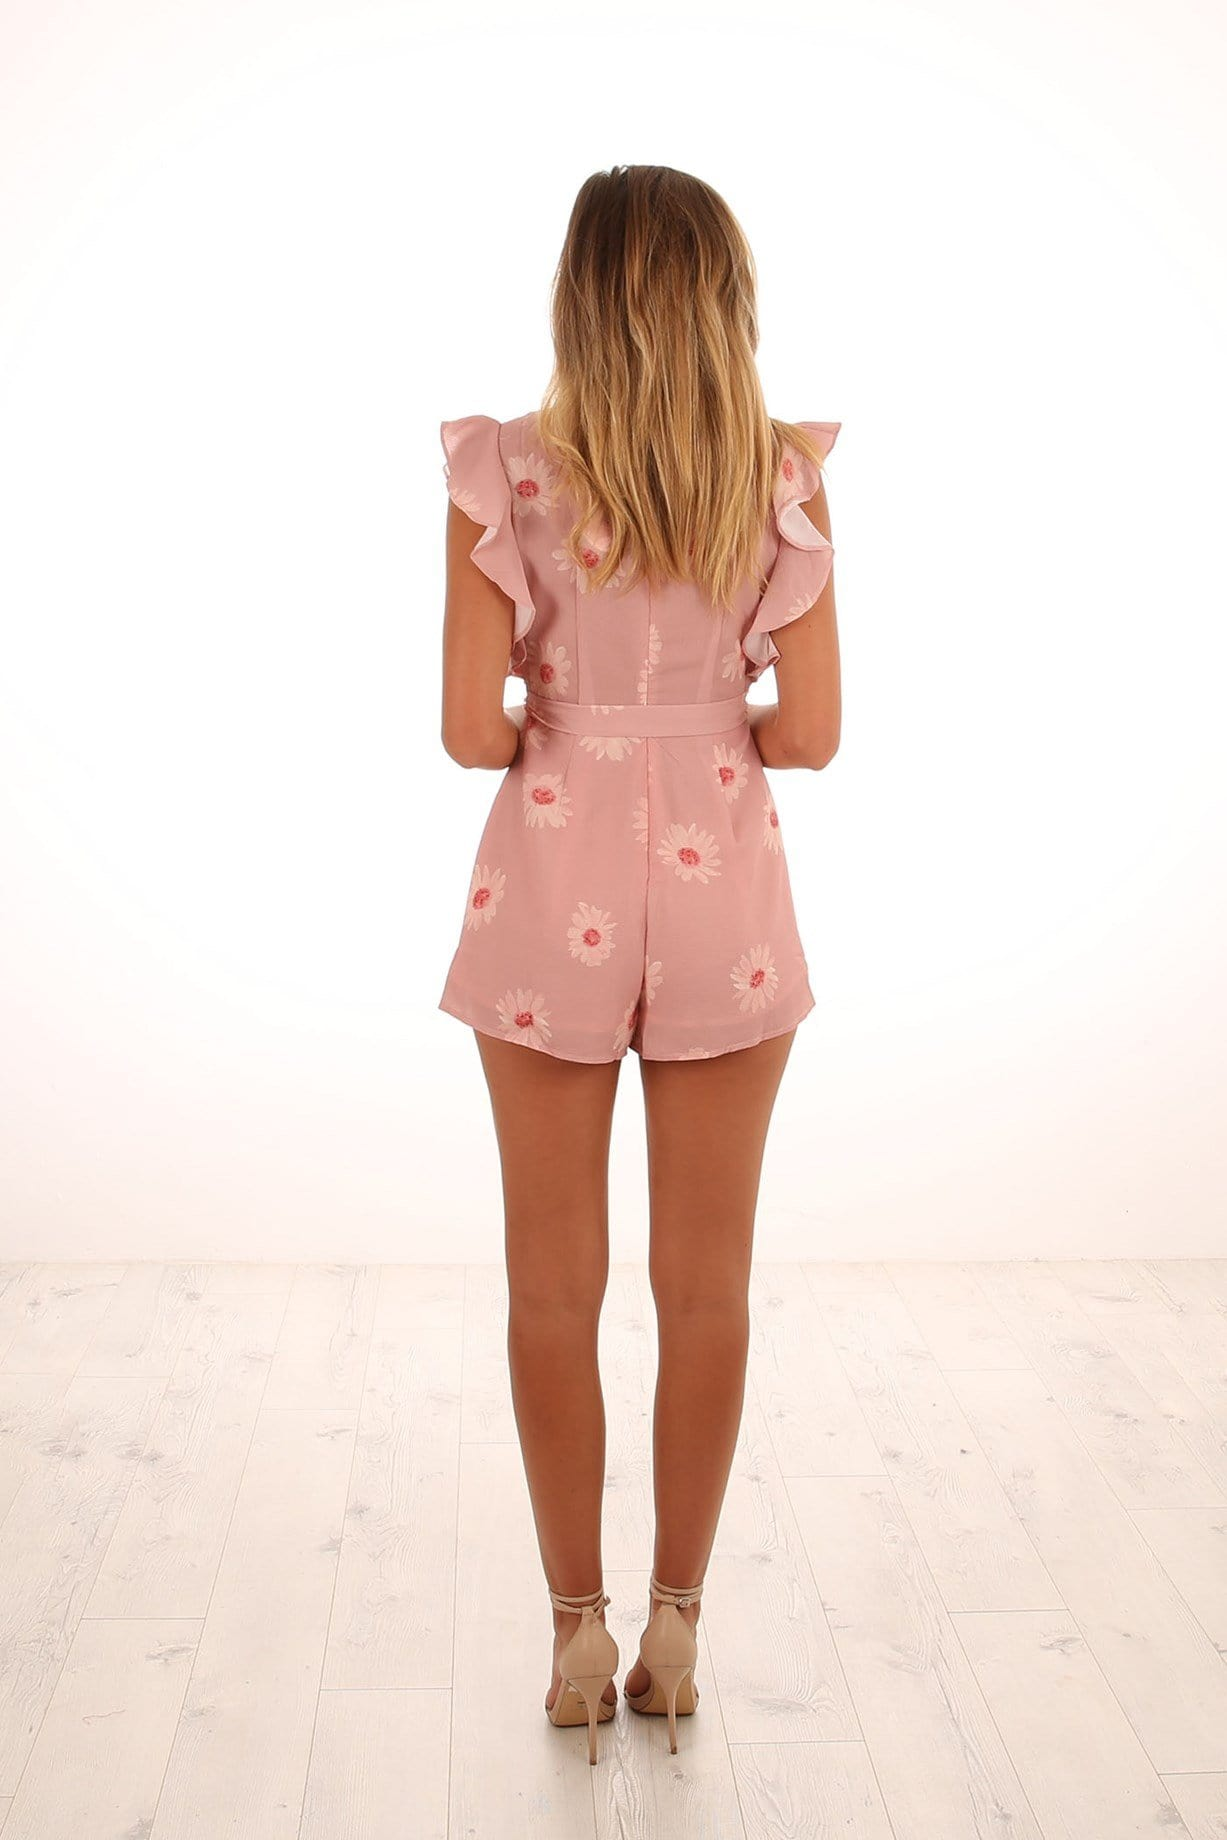 Come Find Me Playsuit Peach